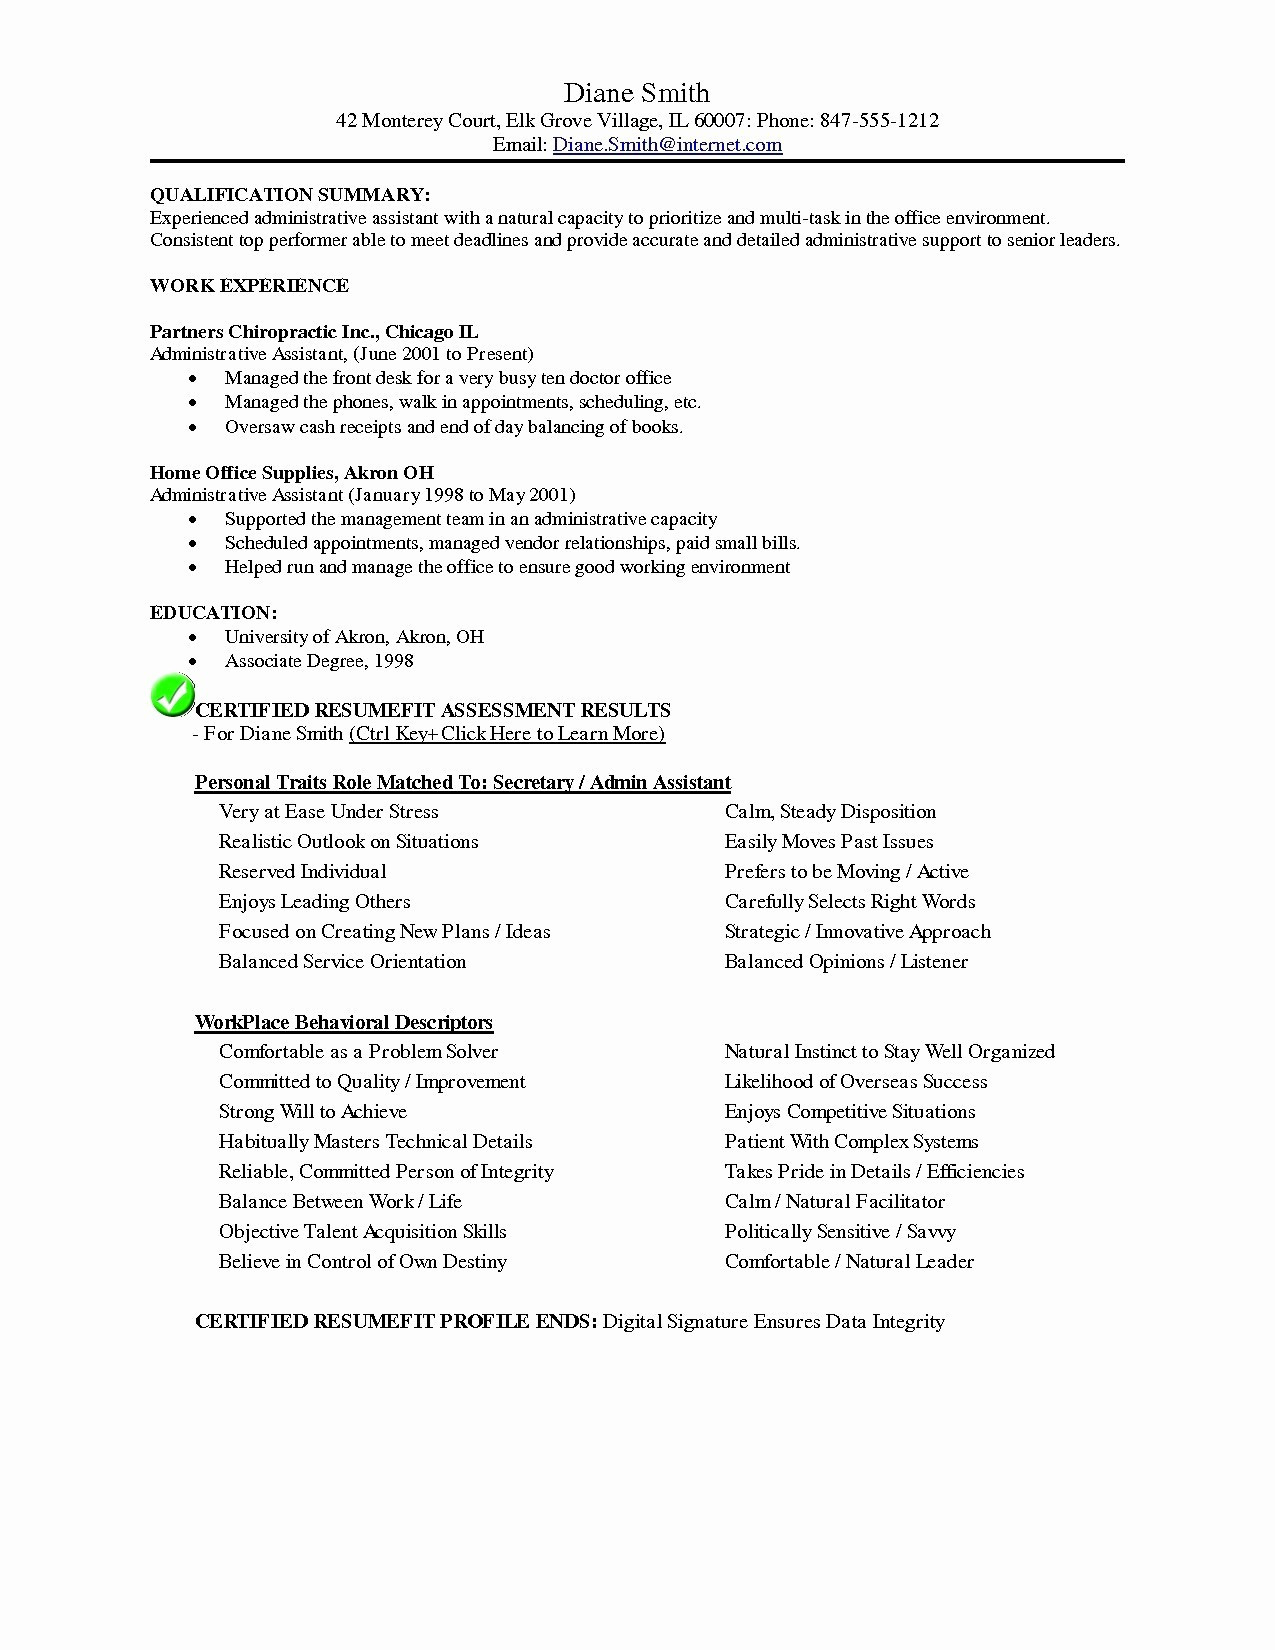 Executive assistant Resume - New Resume Samples for Administrative assistant